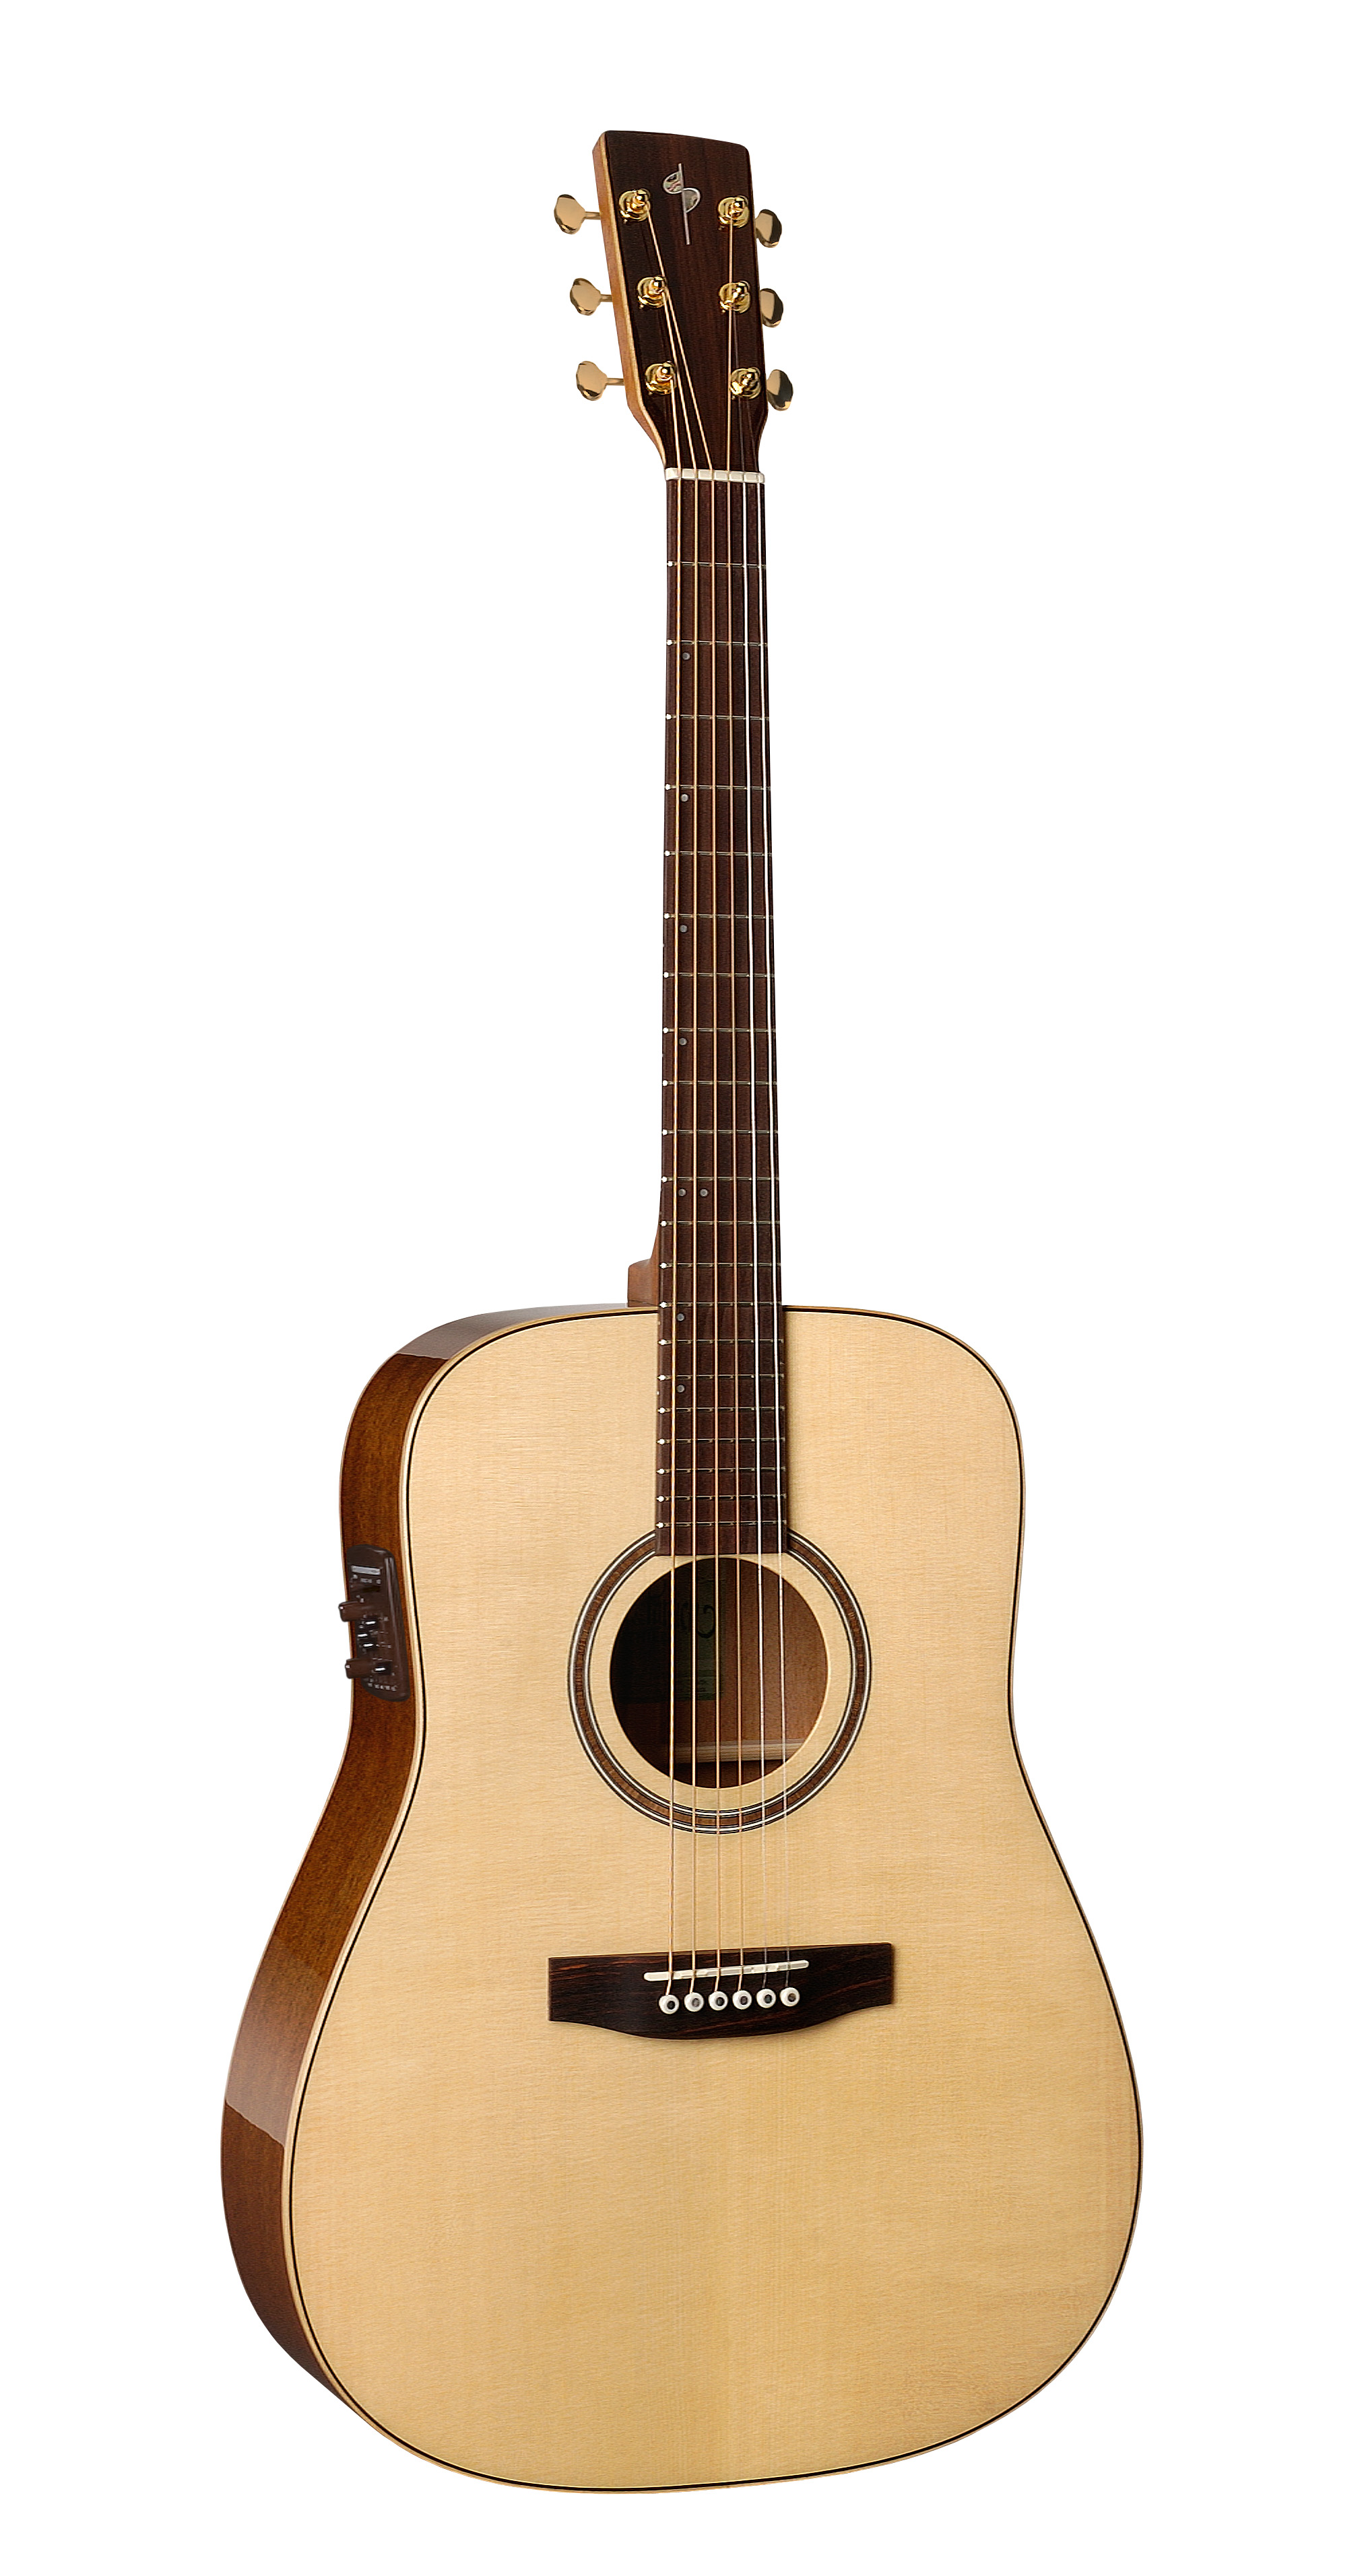 Simon & Patrick 33263 Showcase Mahogany Acoustic Electric Guitar w/ B-Band A6T